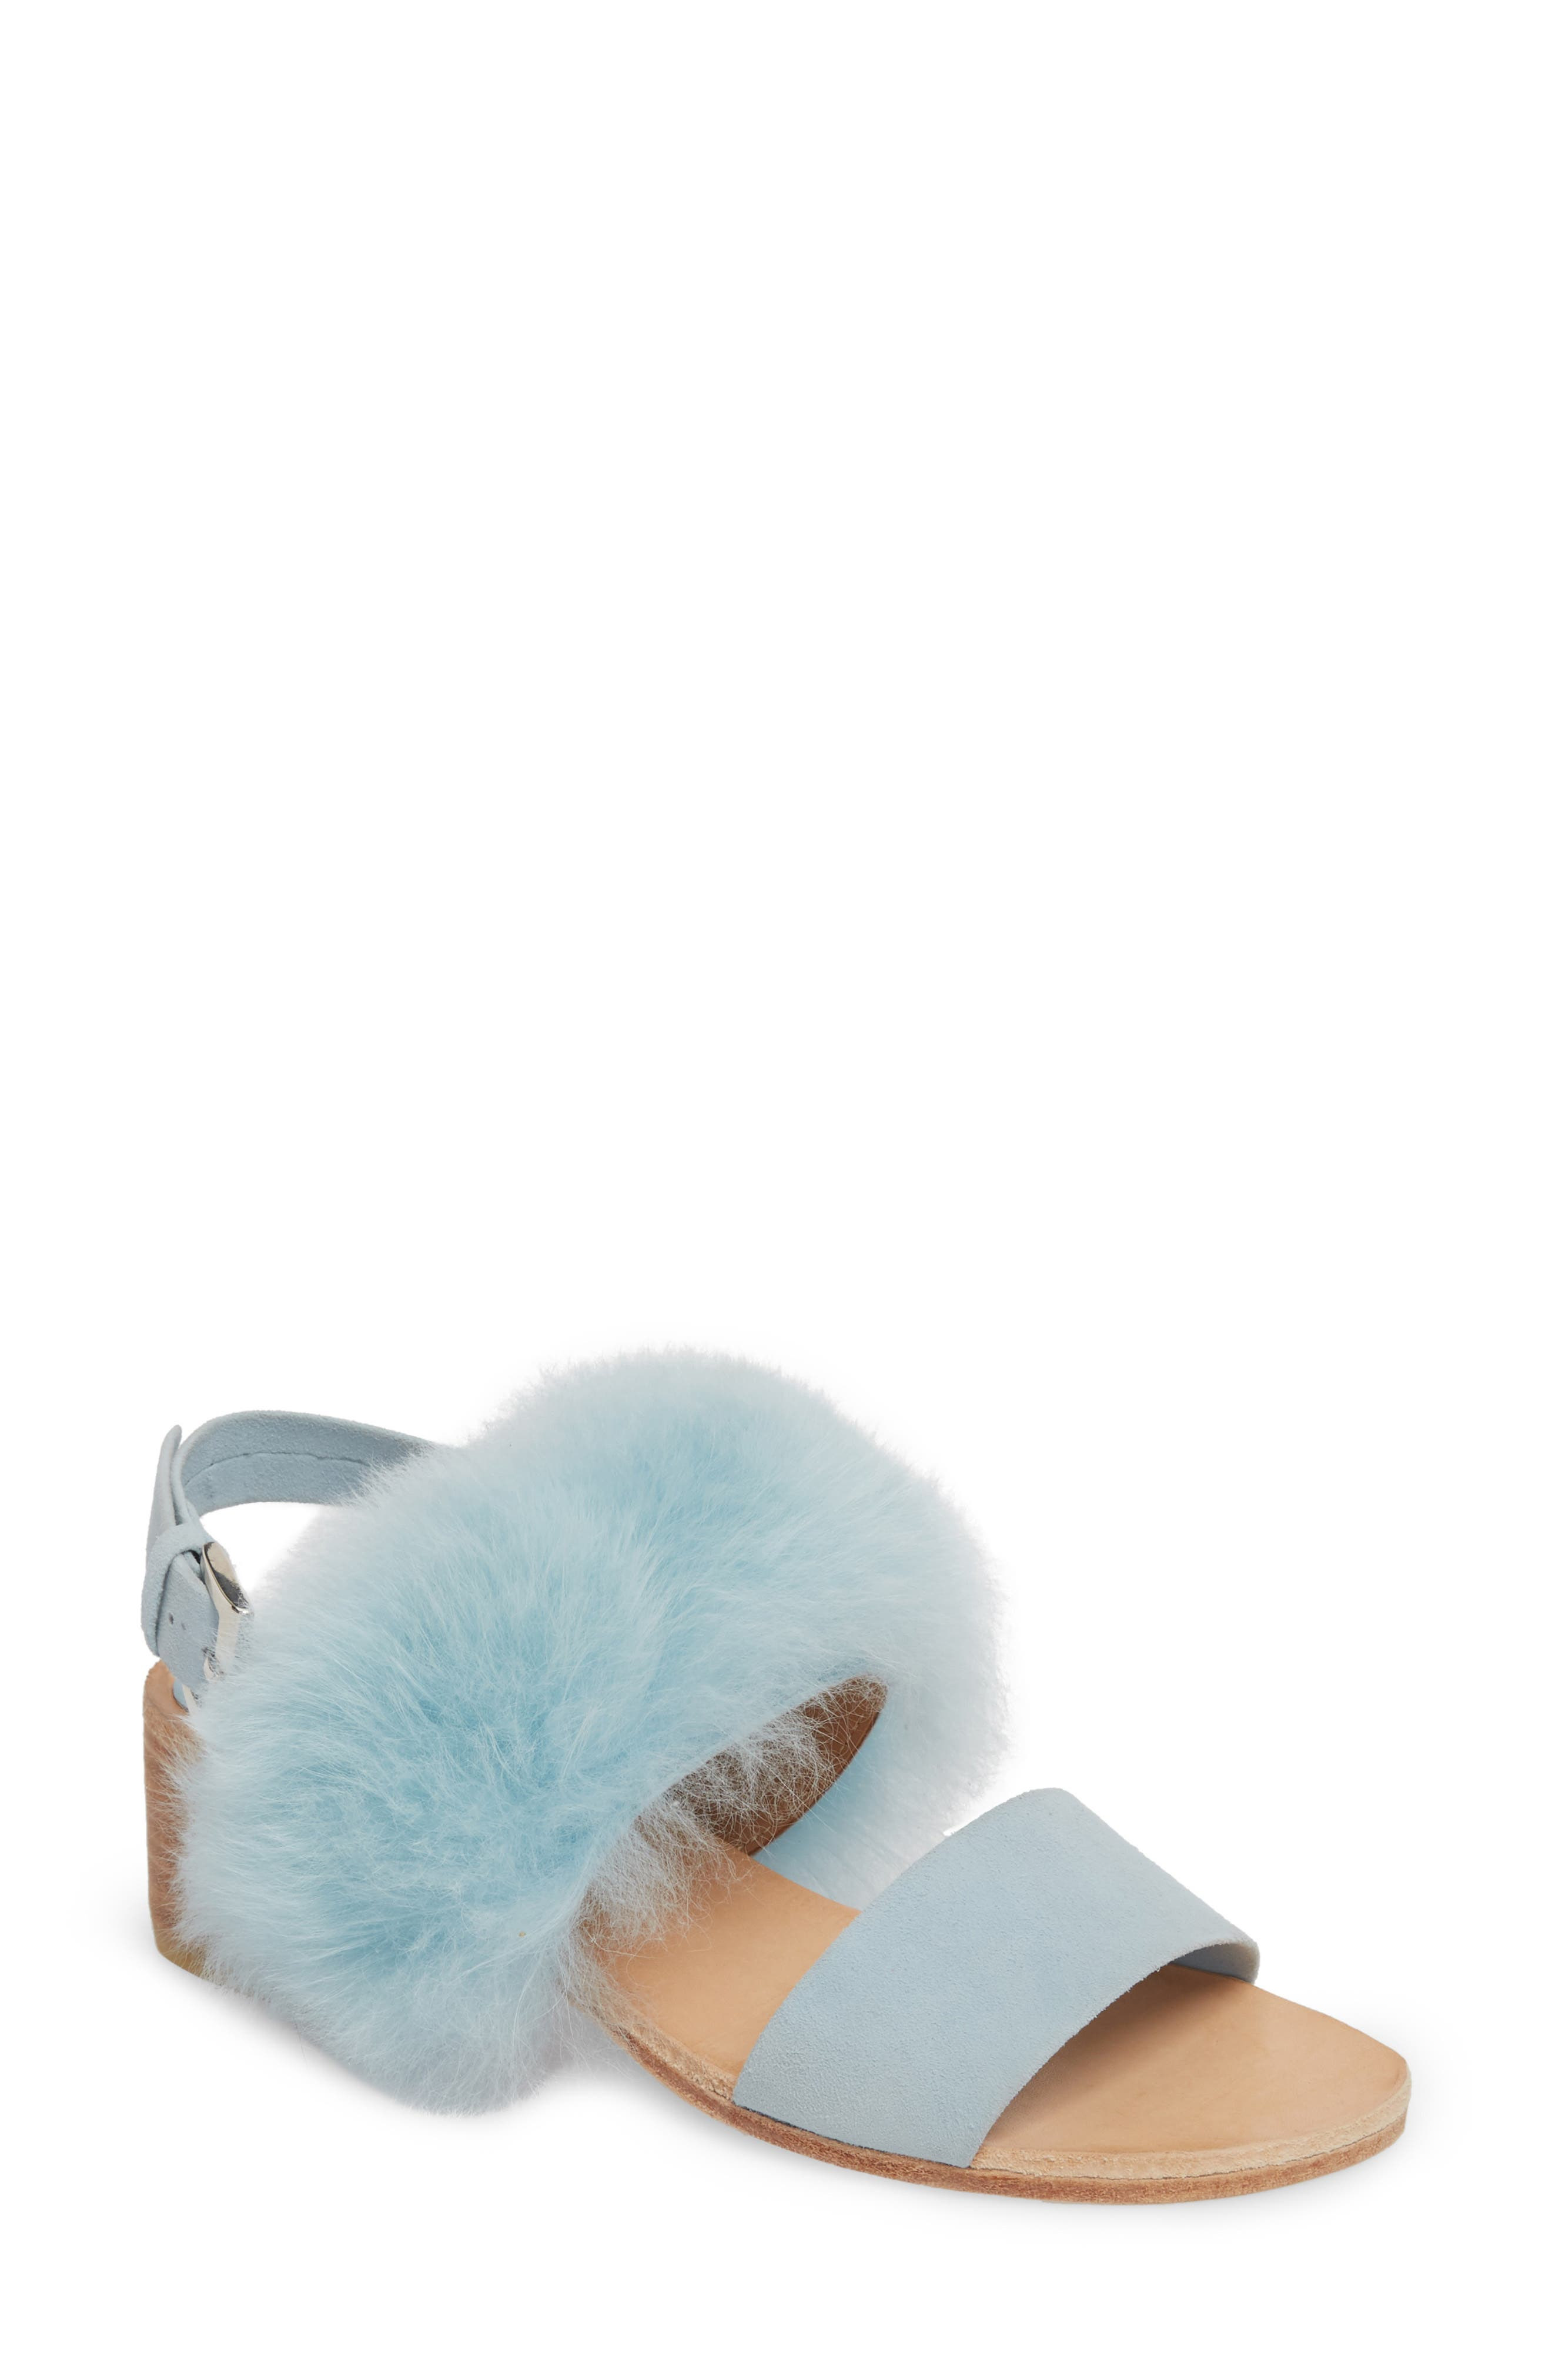 Clemence Genuine Alpaca Fur Sandal,                             Main thumbnail 1, color,                             Pastel Blue Suede